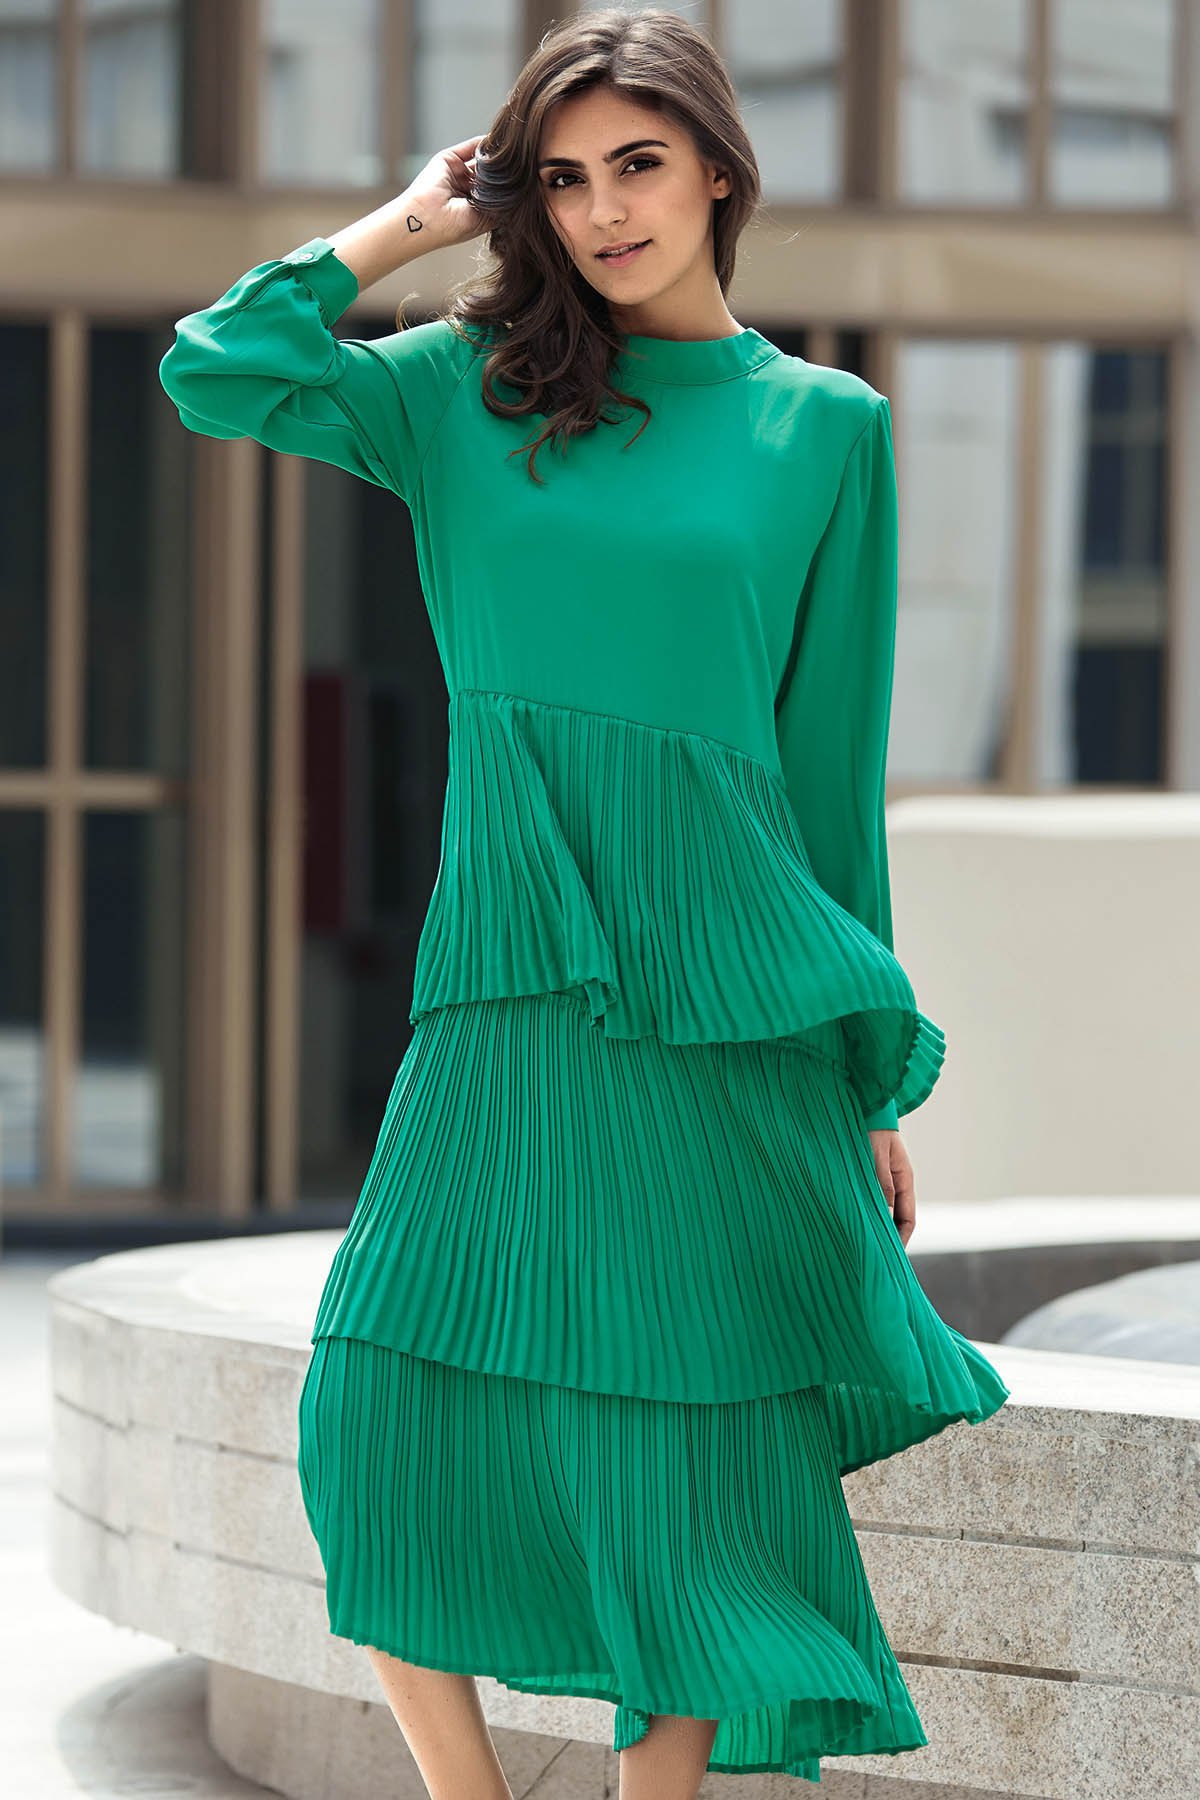 http://www.zaful.com/green-flounce-ruffles-round-neck-long-sleeve-dress-p_177247.html